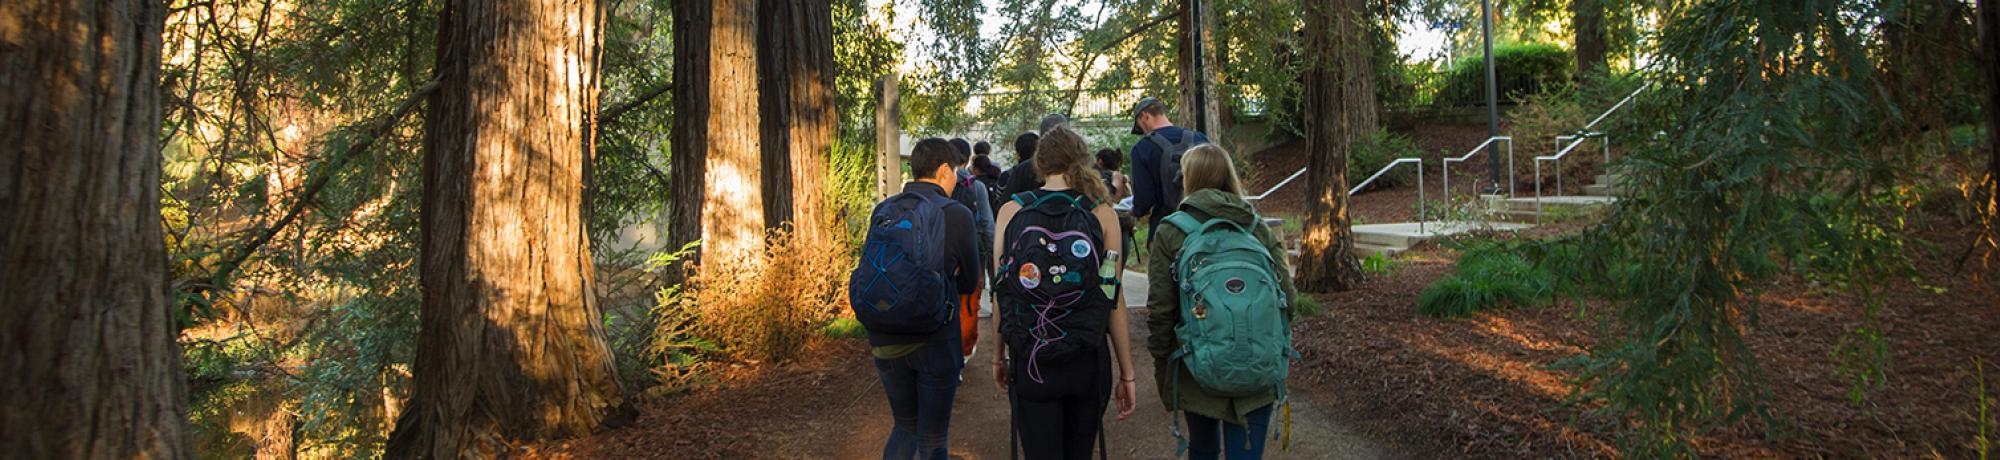 Students walking in the arboretum.